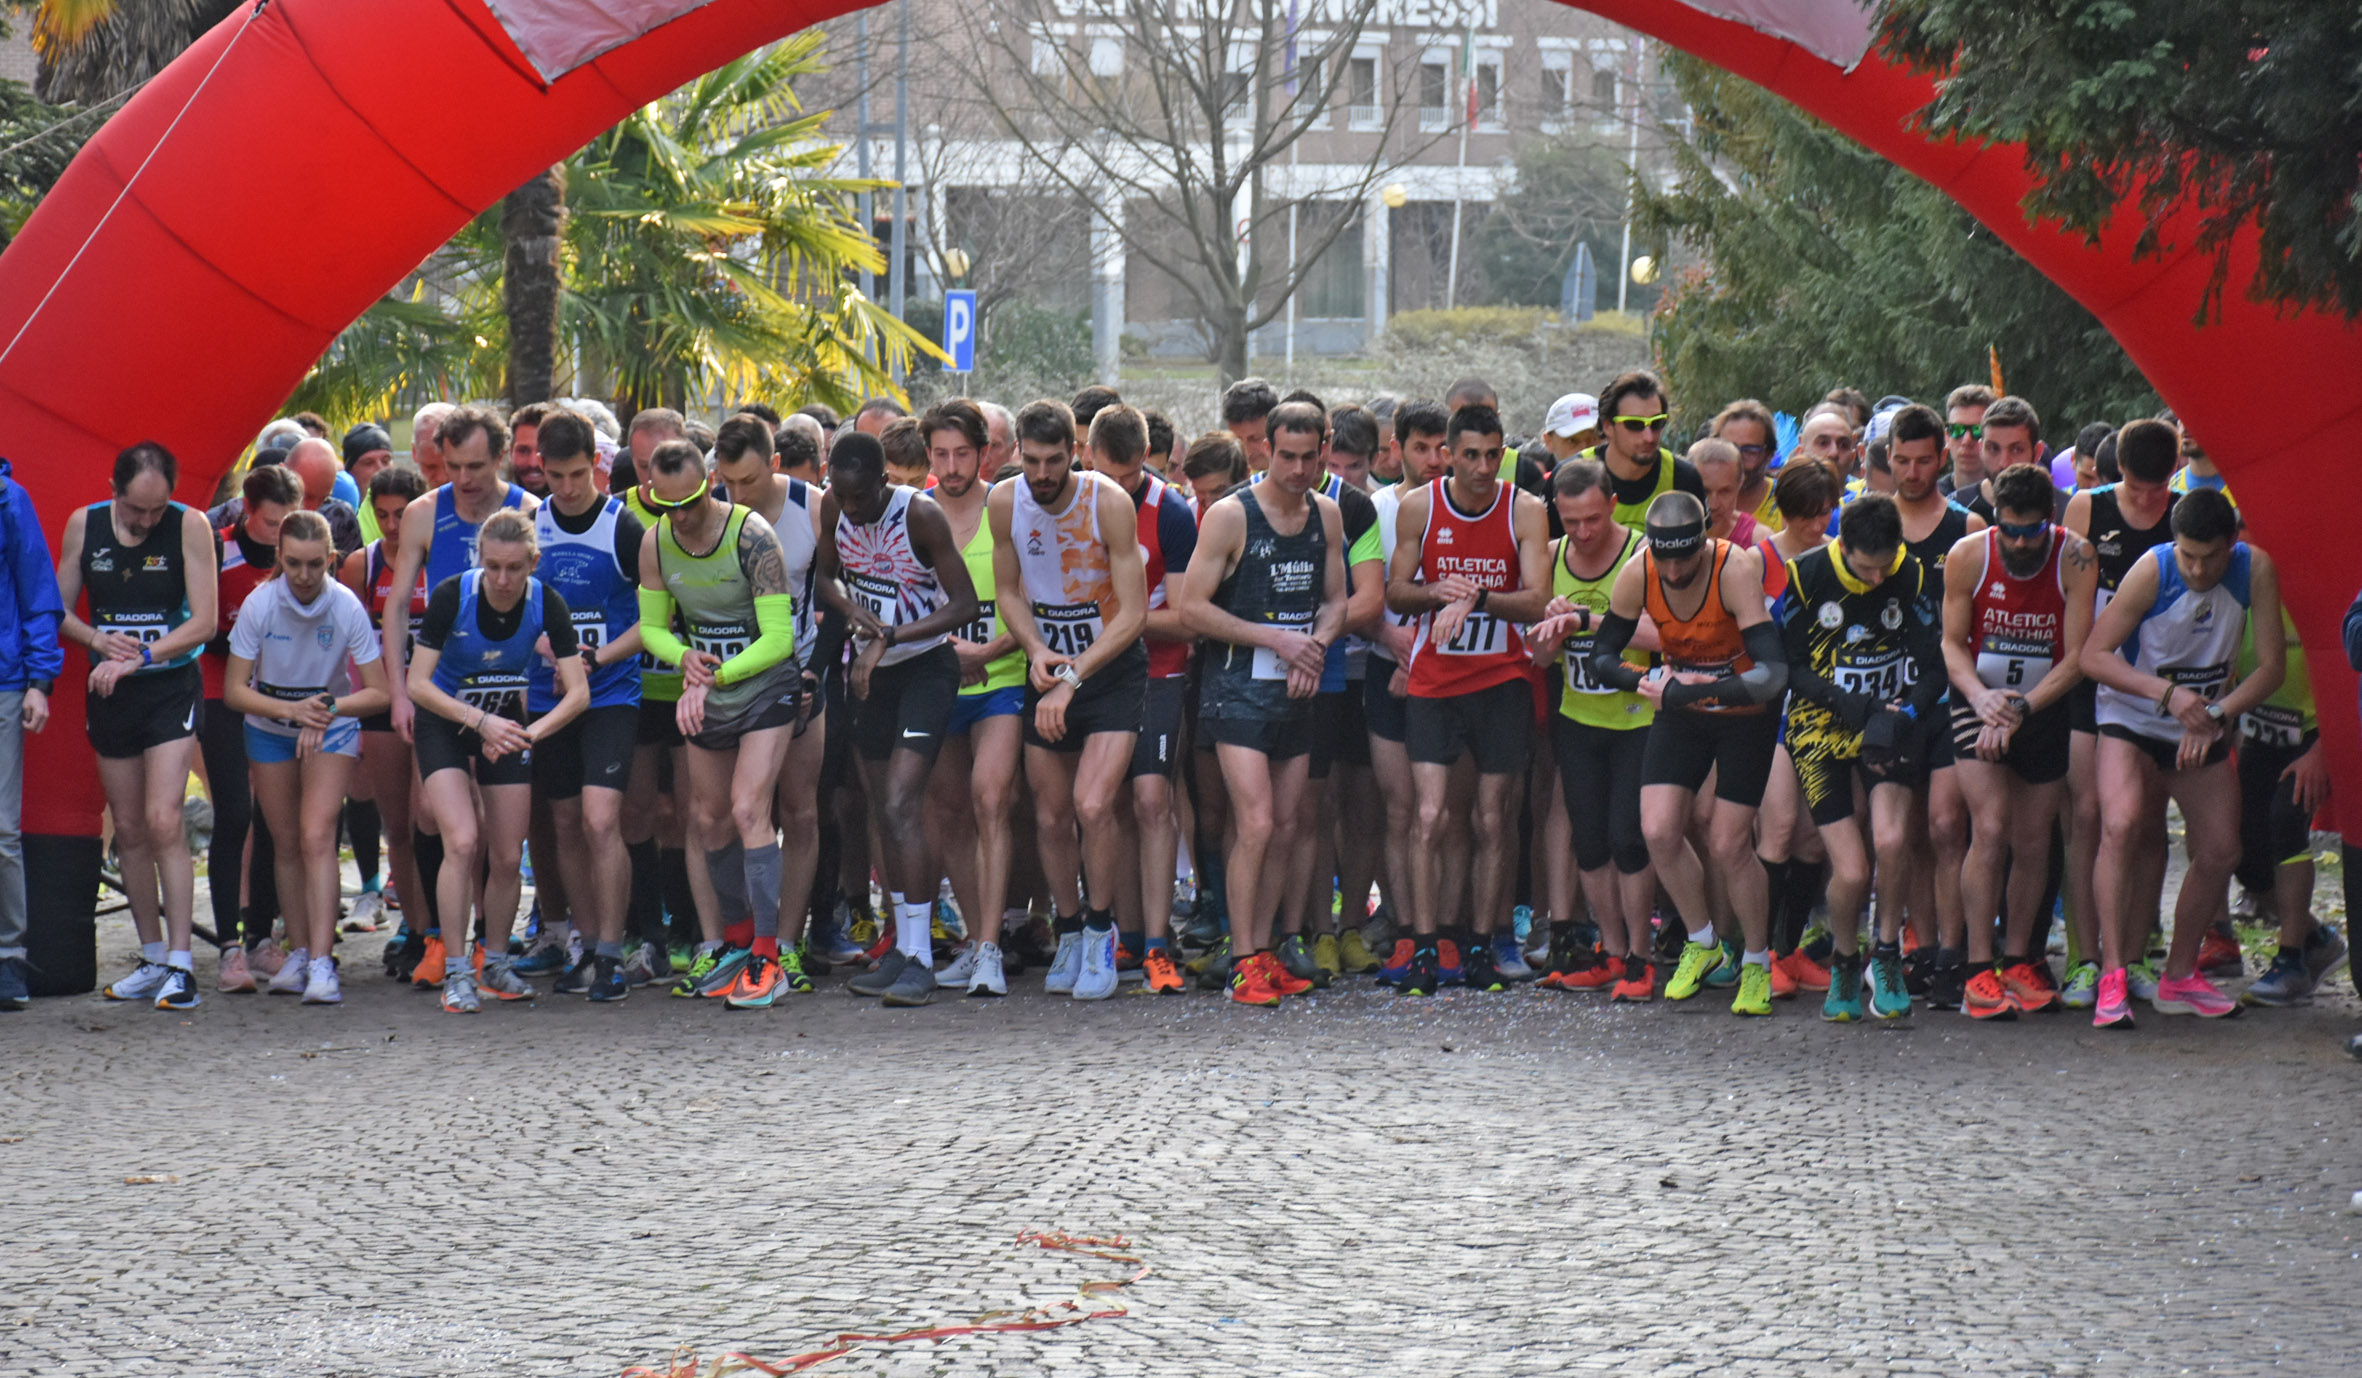 Video Karneval Run Biella